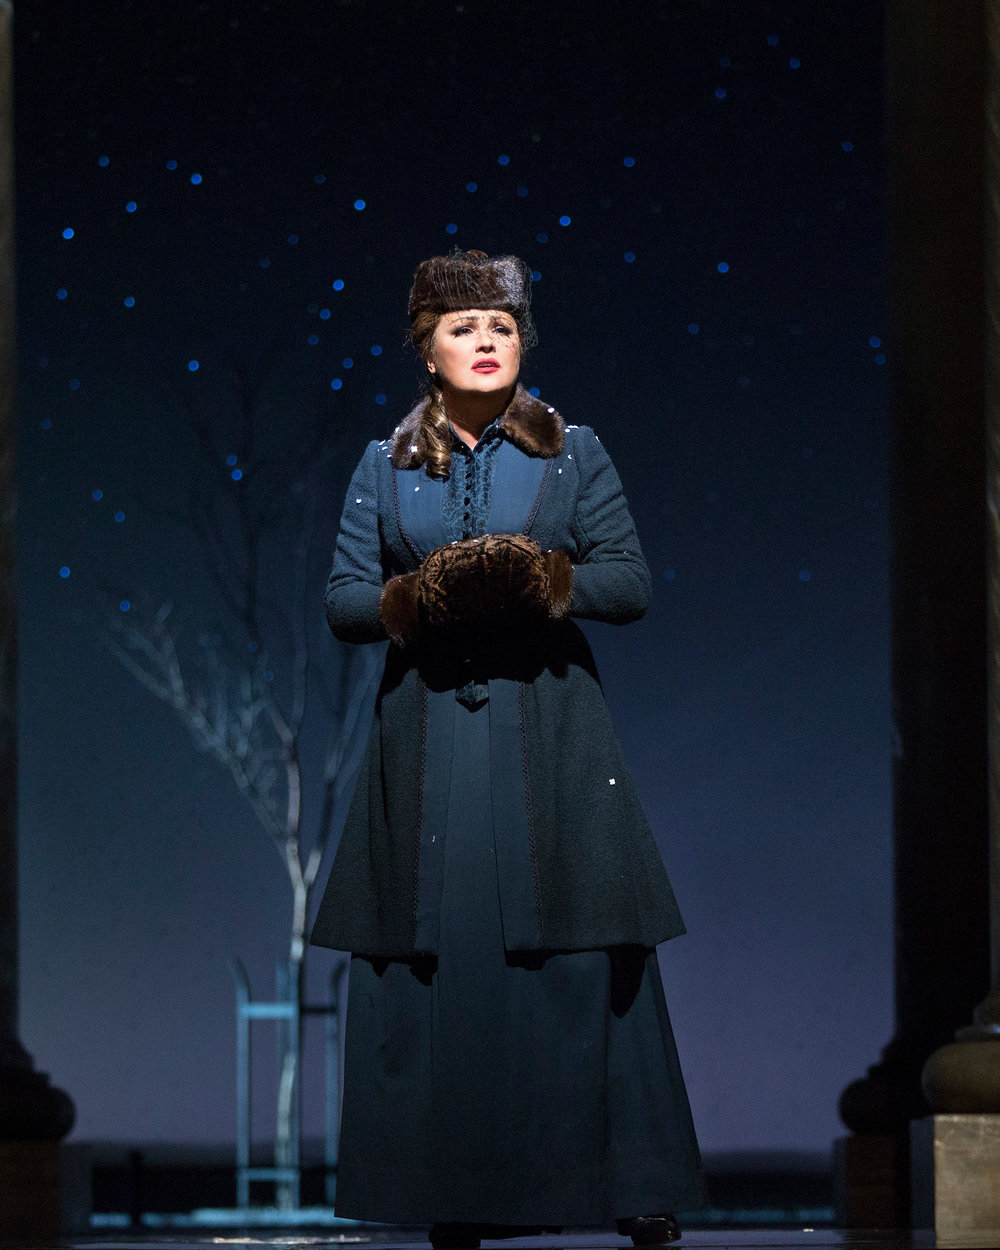 Anna Netrebko as a more mature Tatiana. Photo by Marty Sohl; courtesy of the Metropolitan Opera